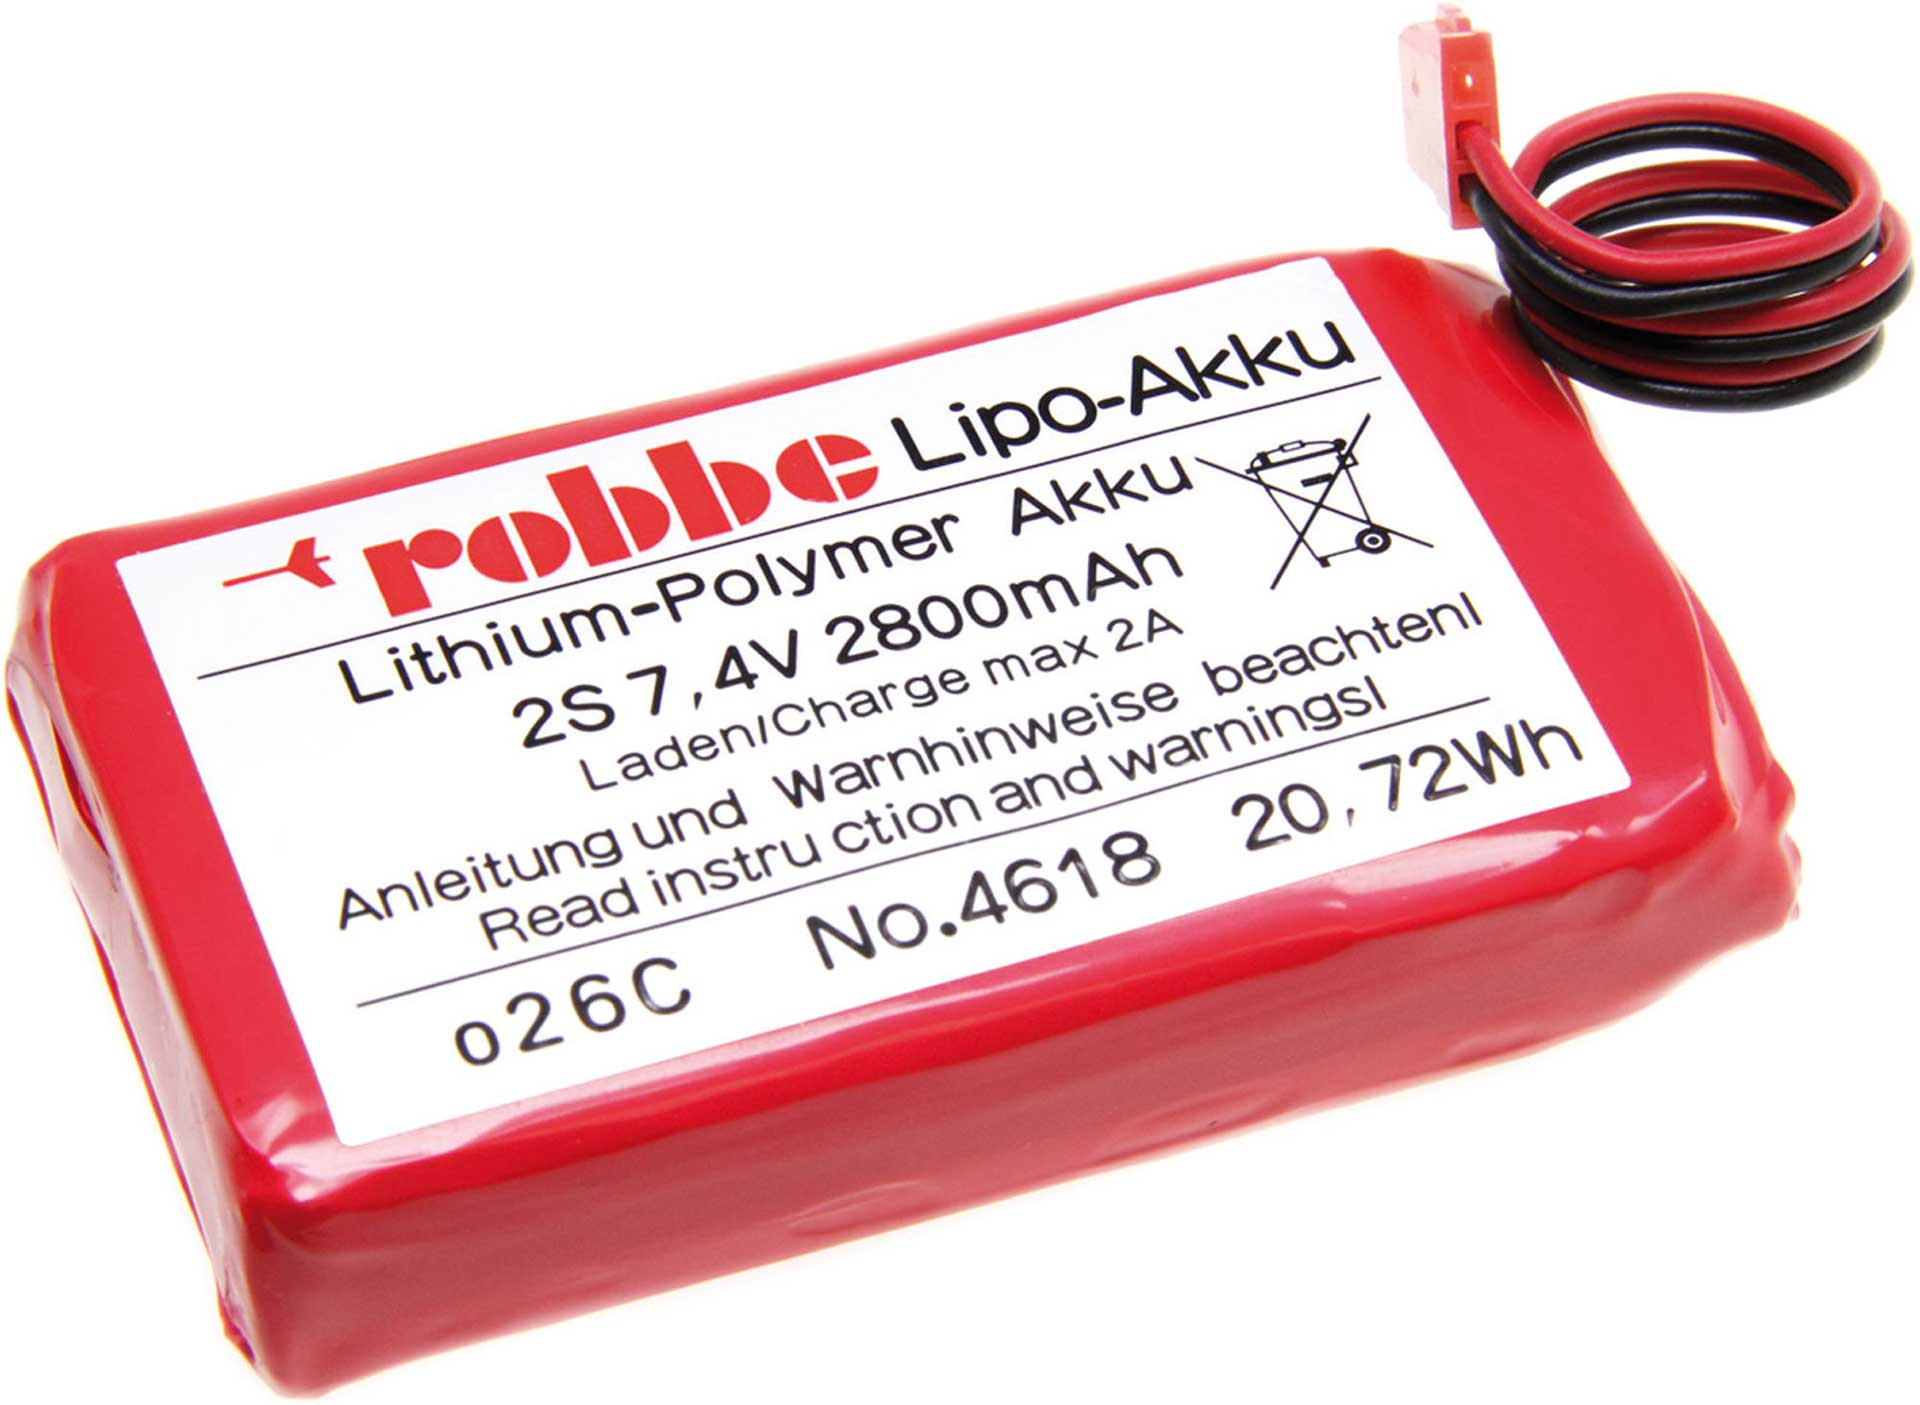 ROBBE LIPO BATTERY  PACK TRANSMITTER BATTERY 7,4 VOLT 2S 2800 MAH FOR T6J / T8J / T4PKS / T4PKS-R / T14SG